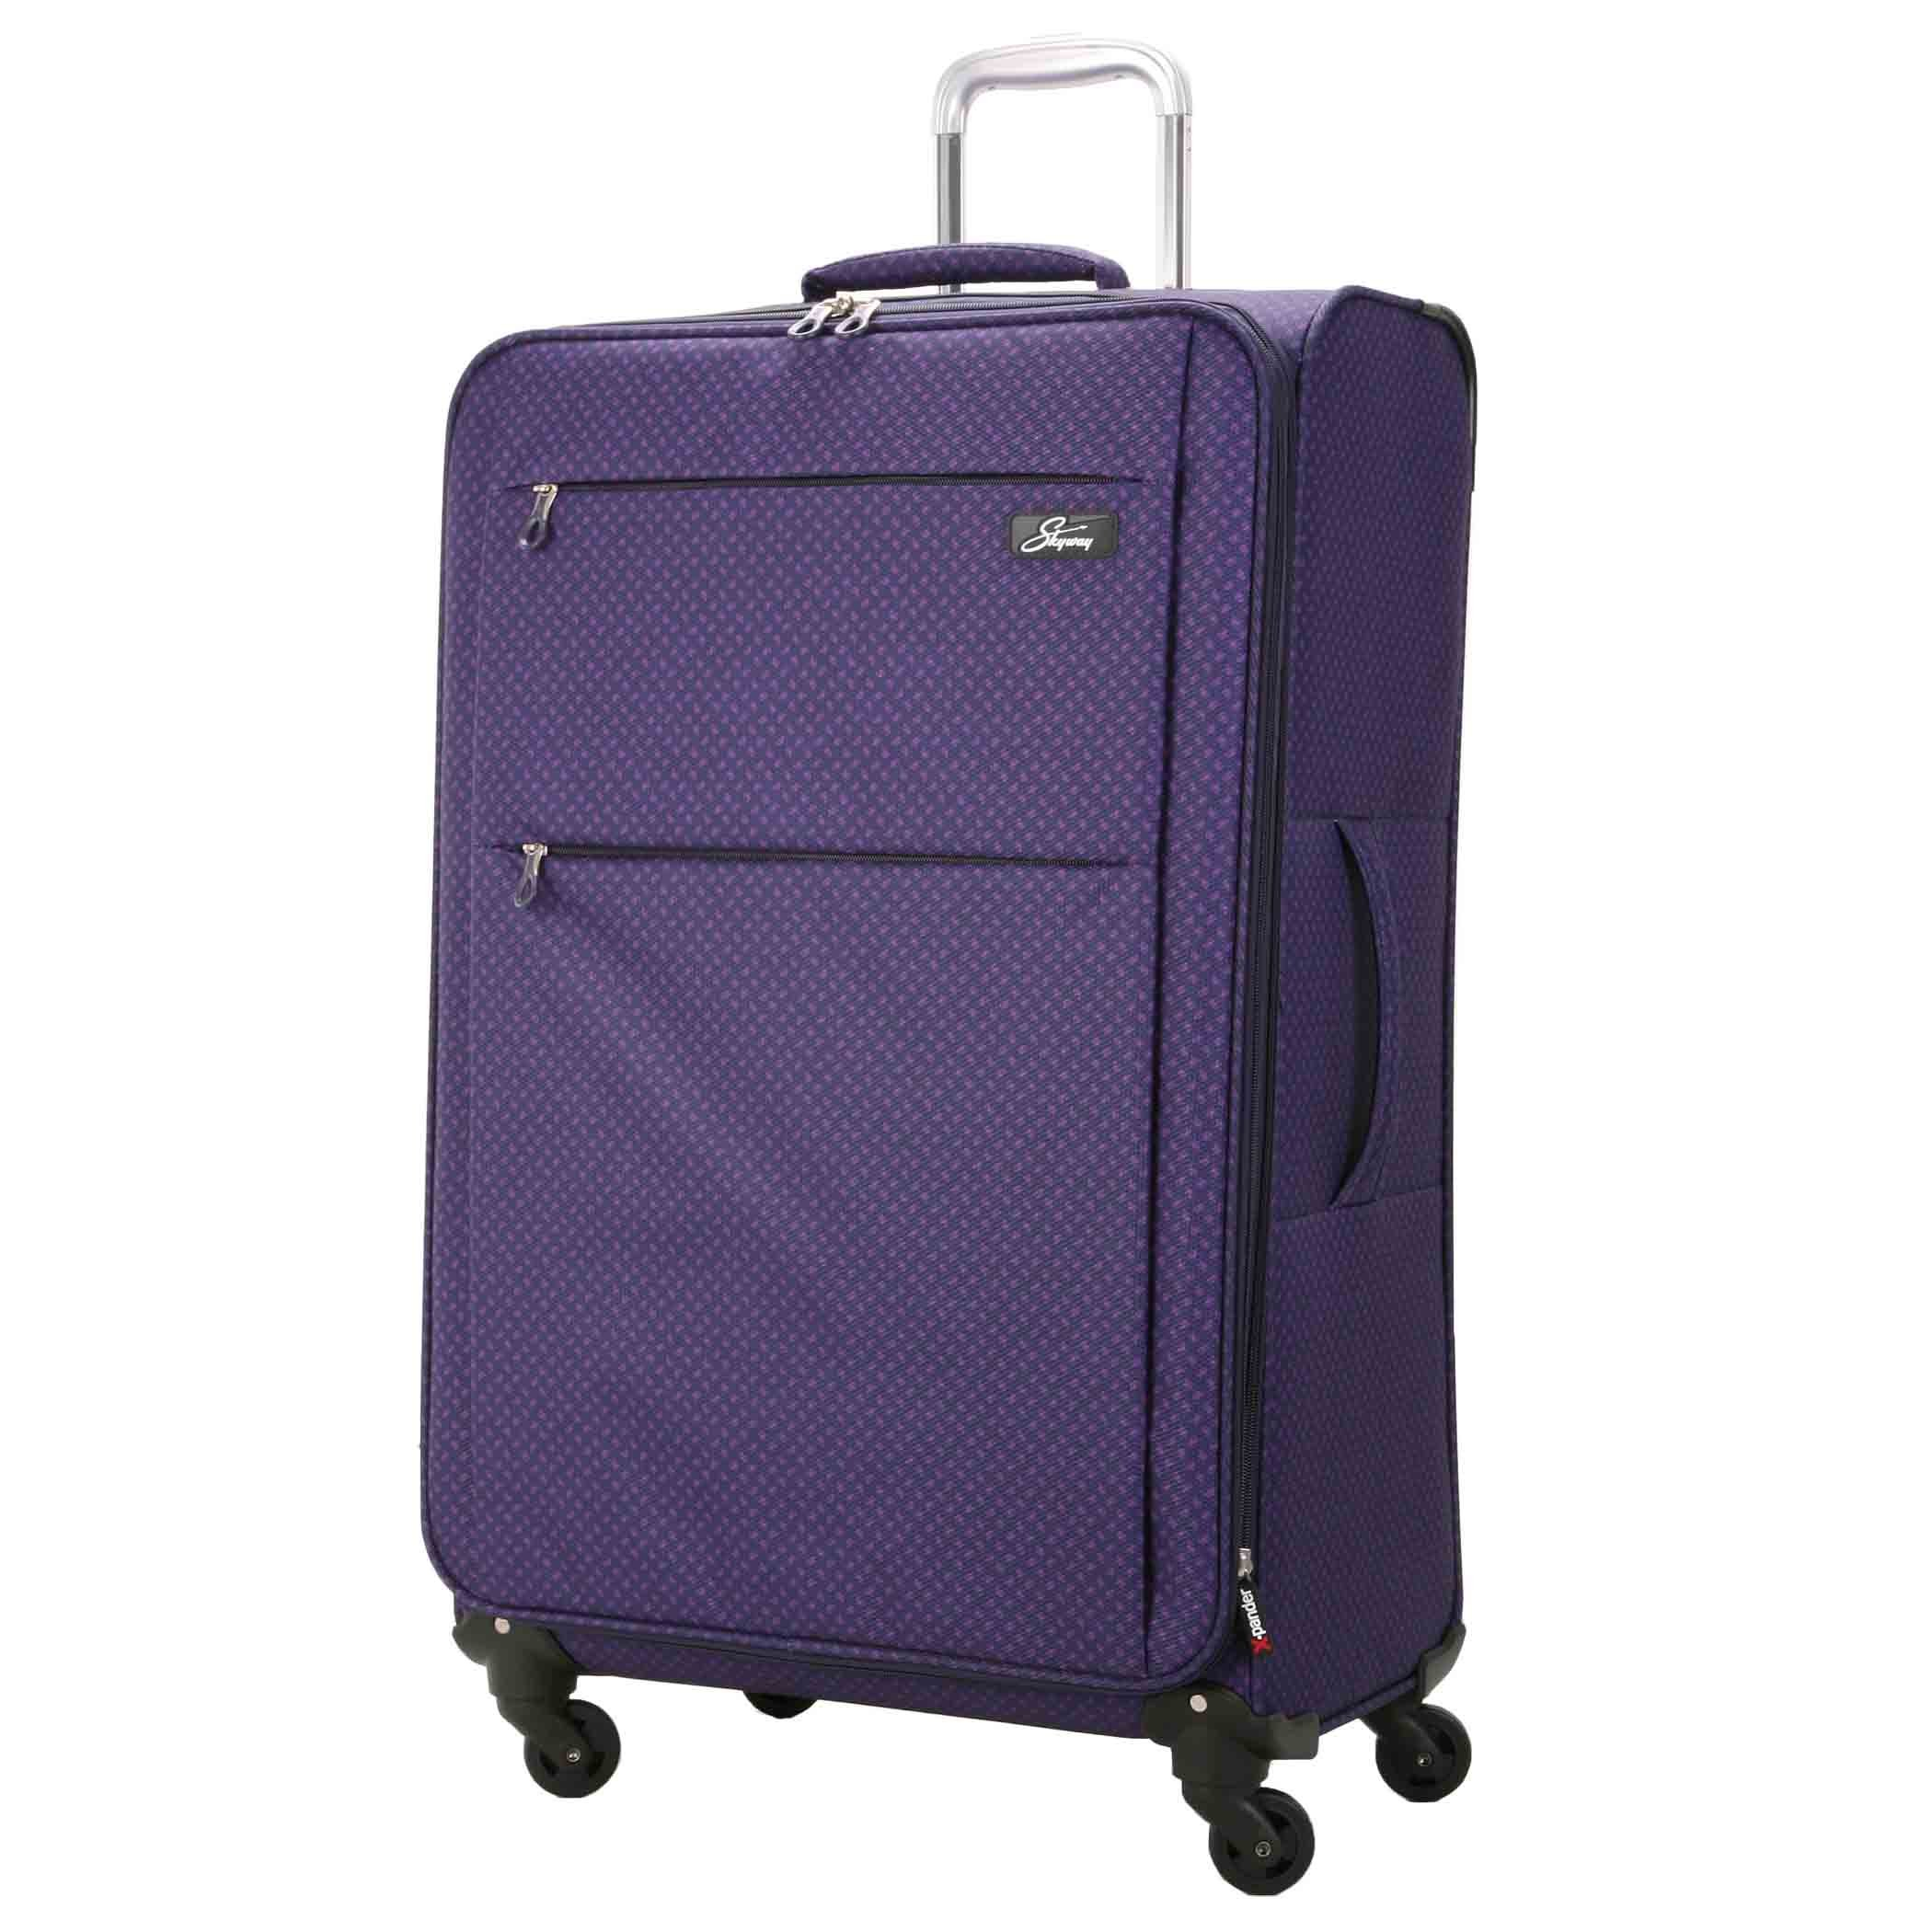 Skyway FL-Air-Air 28-Inch 4 Wheel Expandable Upright, Royal Paisley, One Size